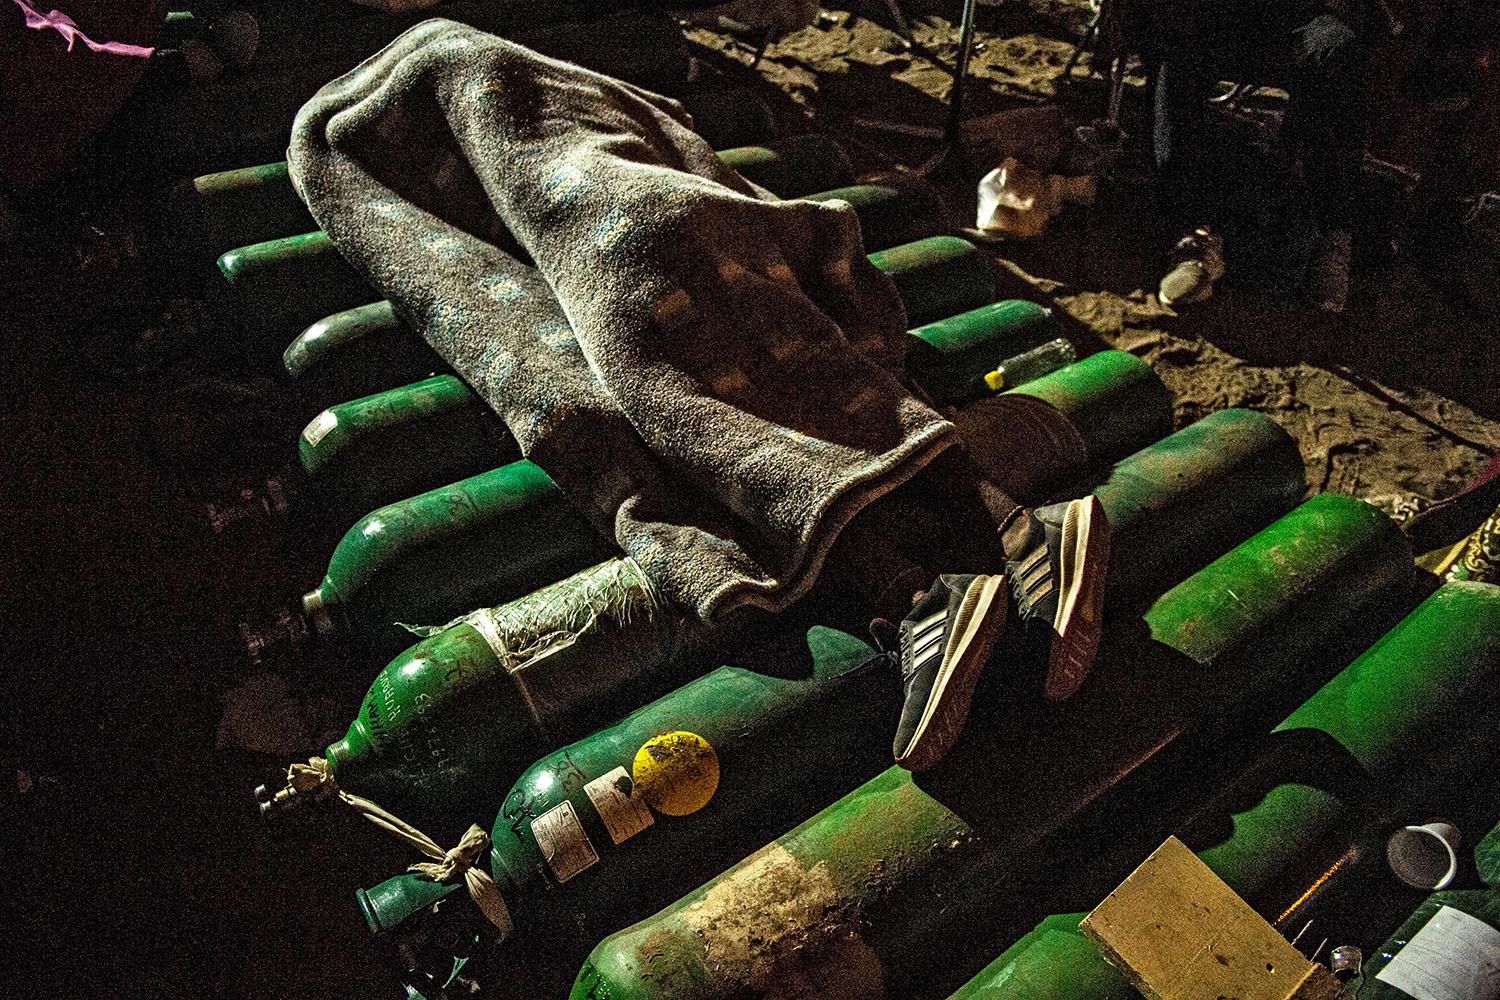 A person sleeps on empty oxygen cylinders while waiting to get them refilled in Villa El Salvador, on the southern outskirts of Lima, Peru, on Feb. 25. Relatives of COVID-19 patients are desperate for oxygen to keep their loved ones alive during a fierce second wave of the pandemic in Peru. ERNESTO BENAVIDES/AFP via Getty Images